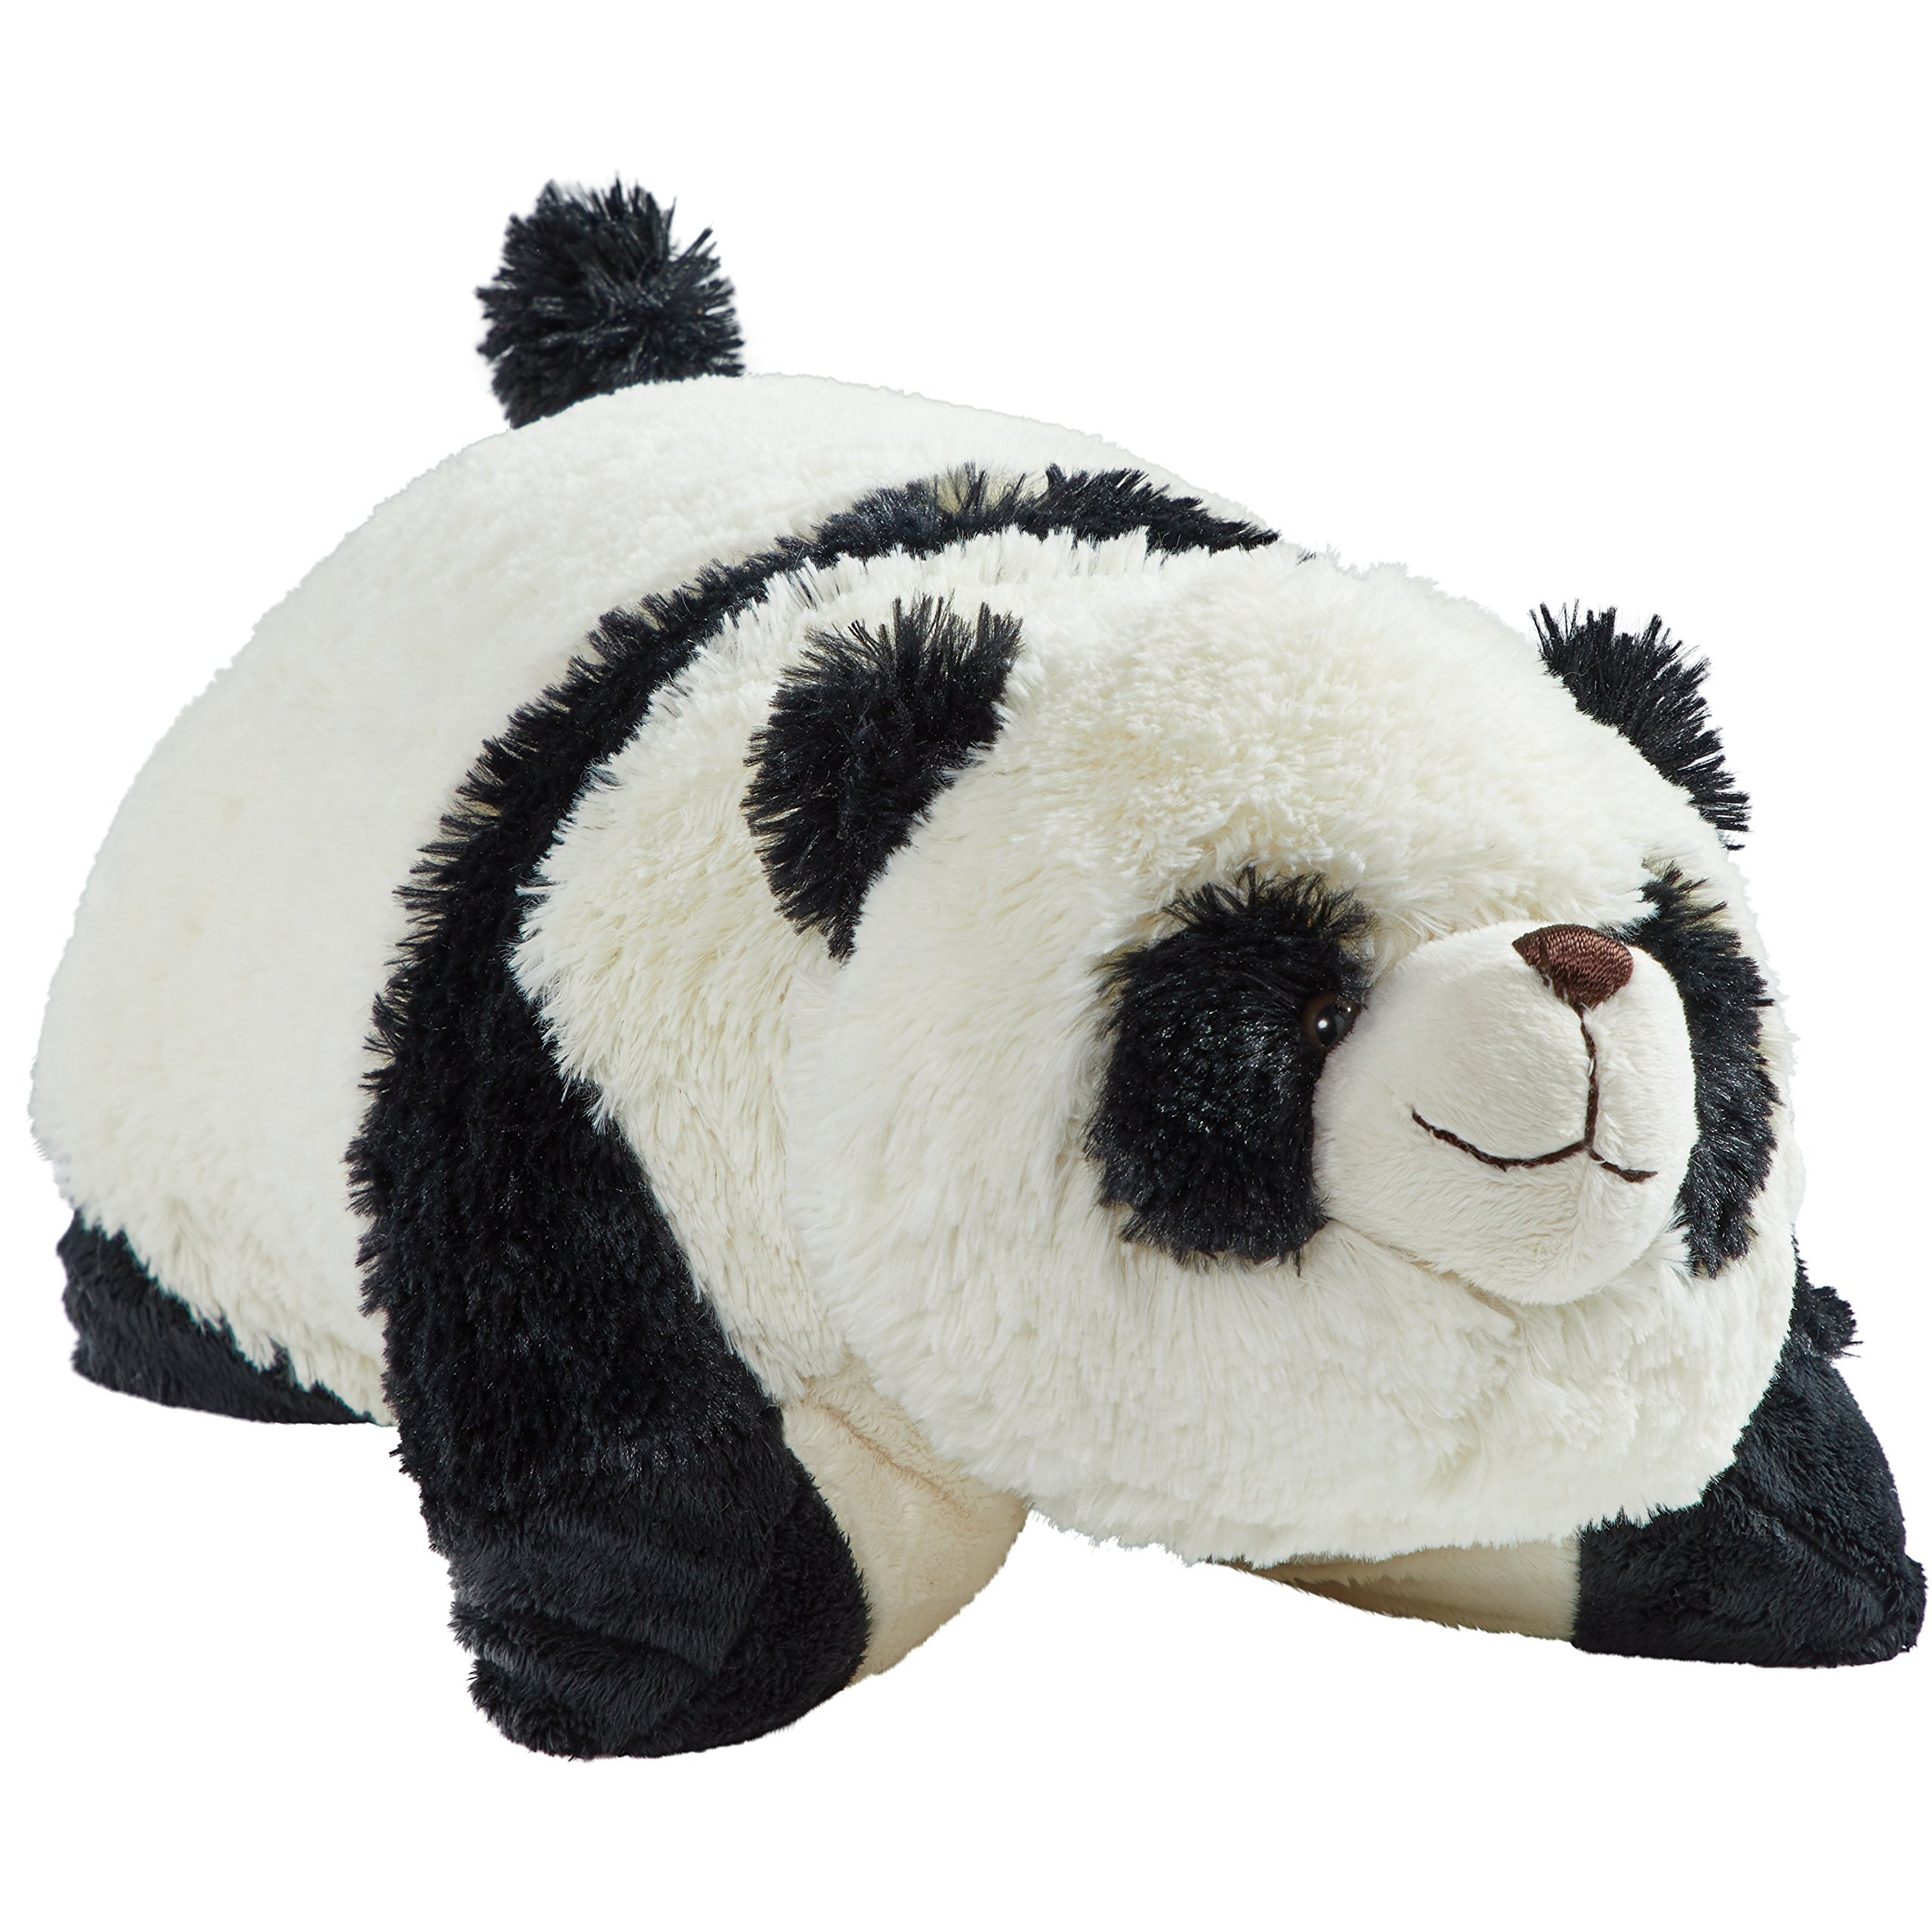 Pillow Pets My Stuffed Toy, Comfy Panda